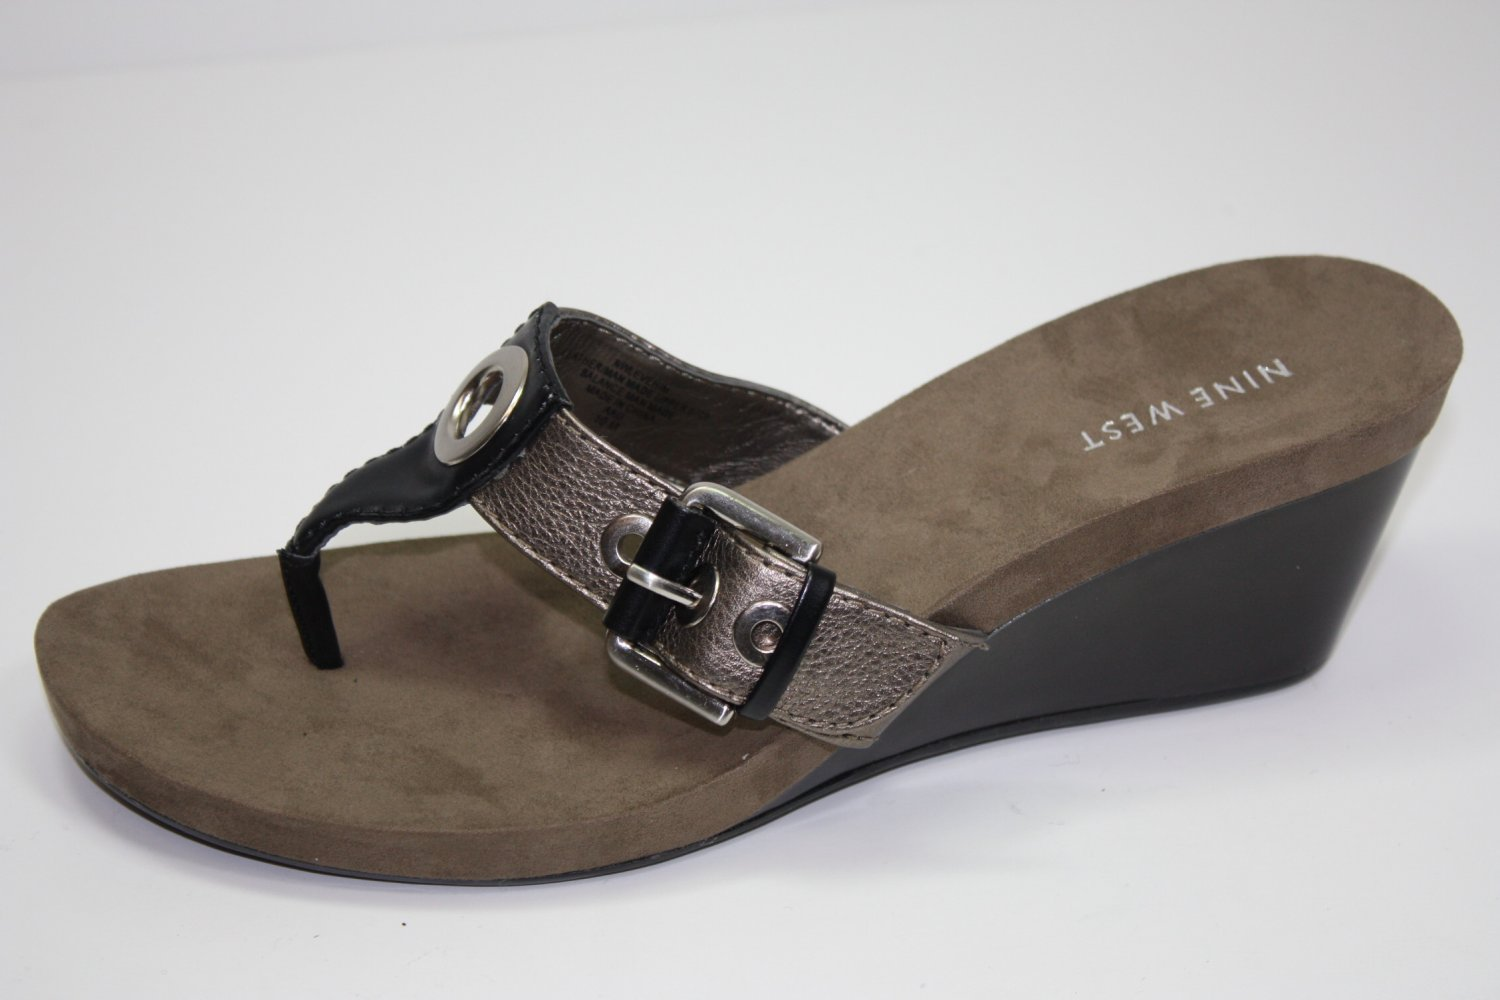 Nine West Levehim Sandals Bronze Shoes US 6.5 $69